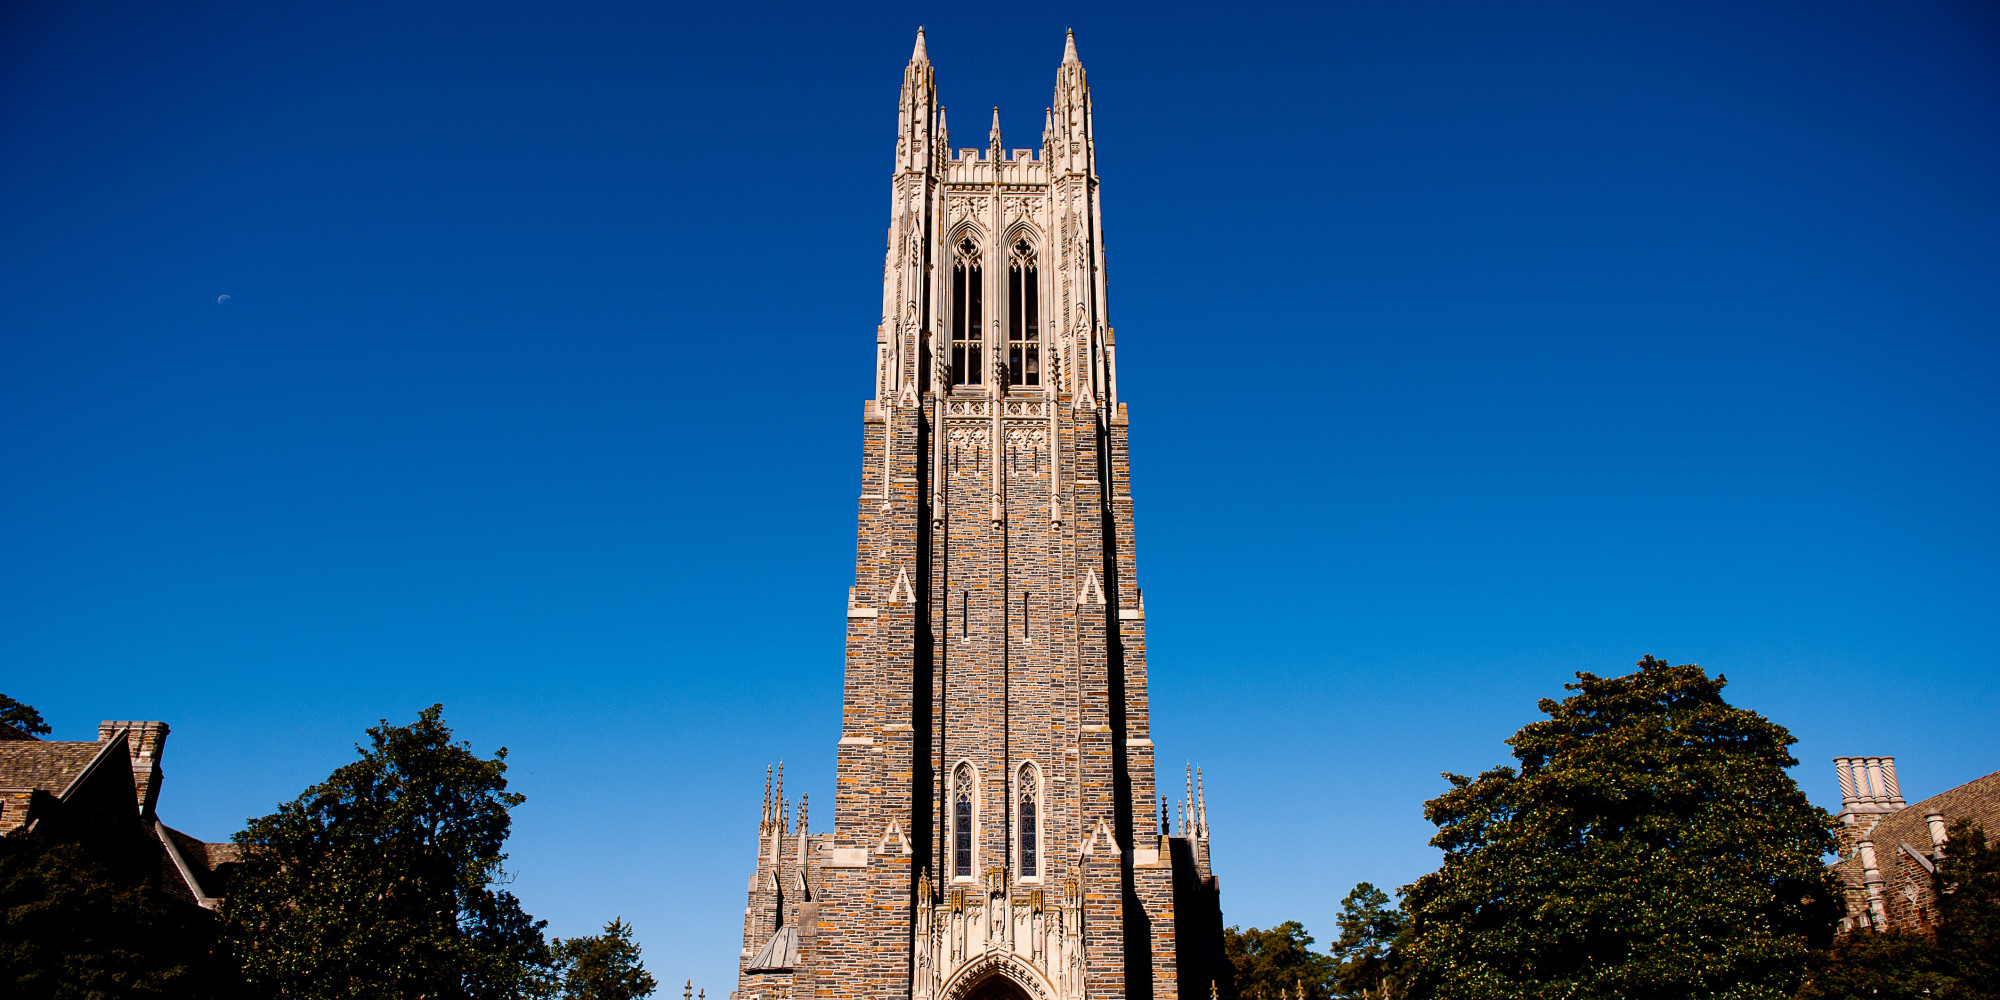 What are the standards for Duke University?